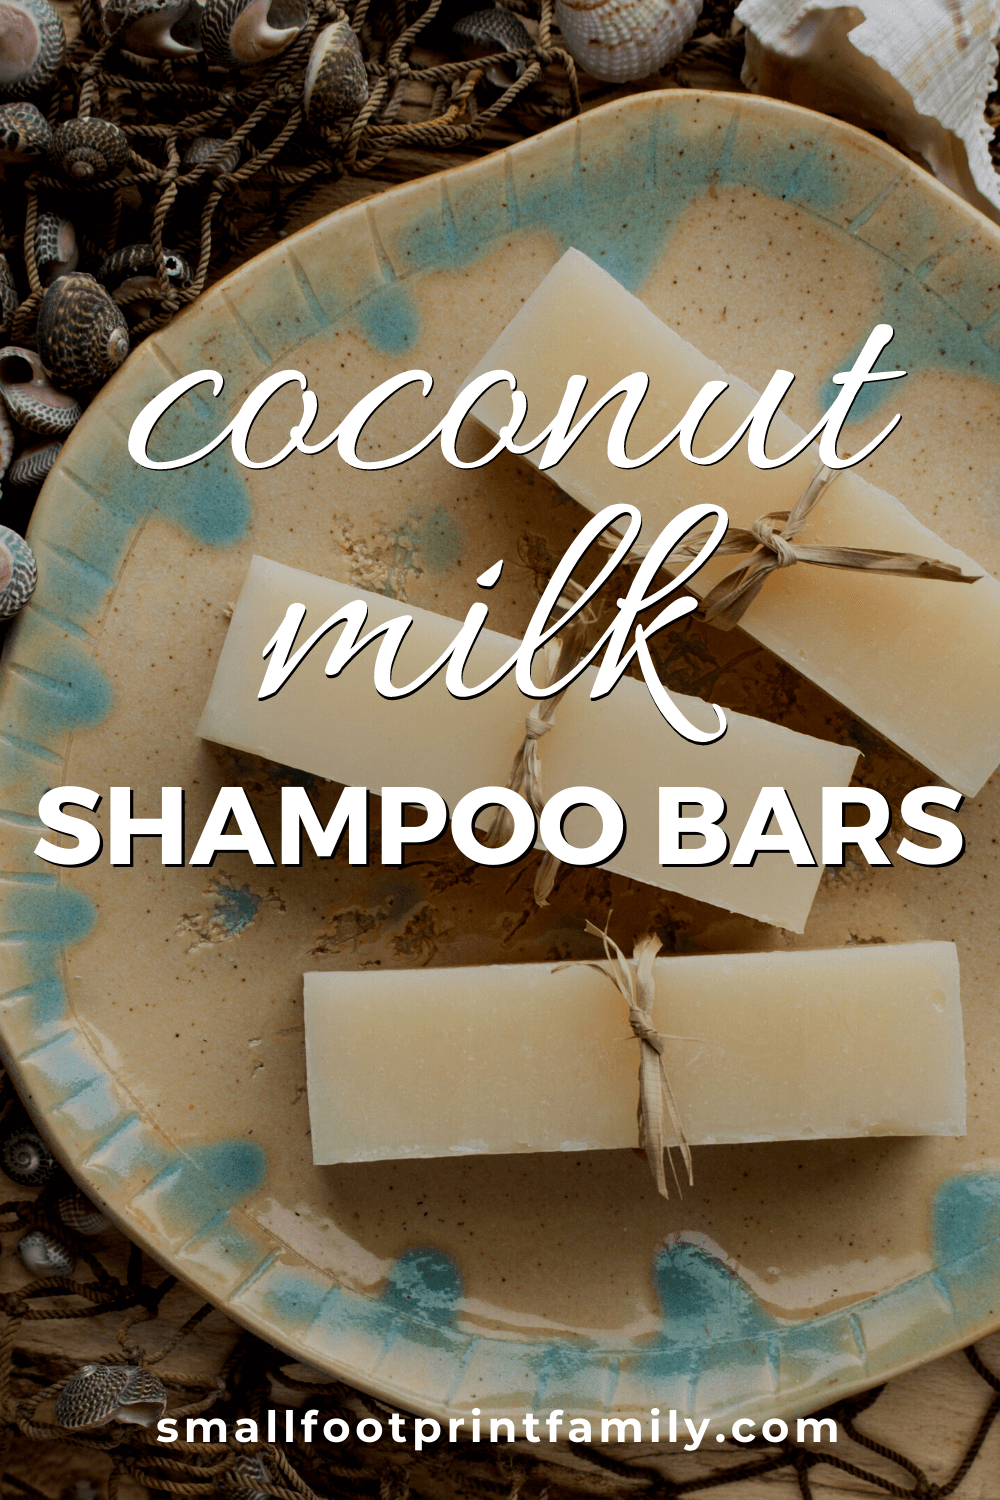 Coconut milk ensures this shampoobar recipe has a bubbly lather and extra creamy feel, while jojoba oil adds a touch of luxury that's fantastic for promoting healthy shiny hair.